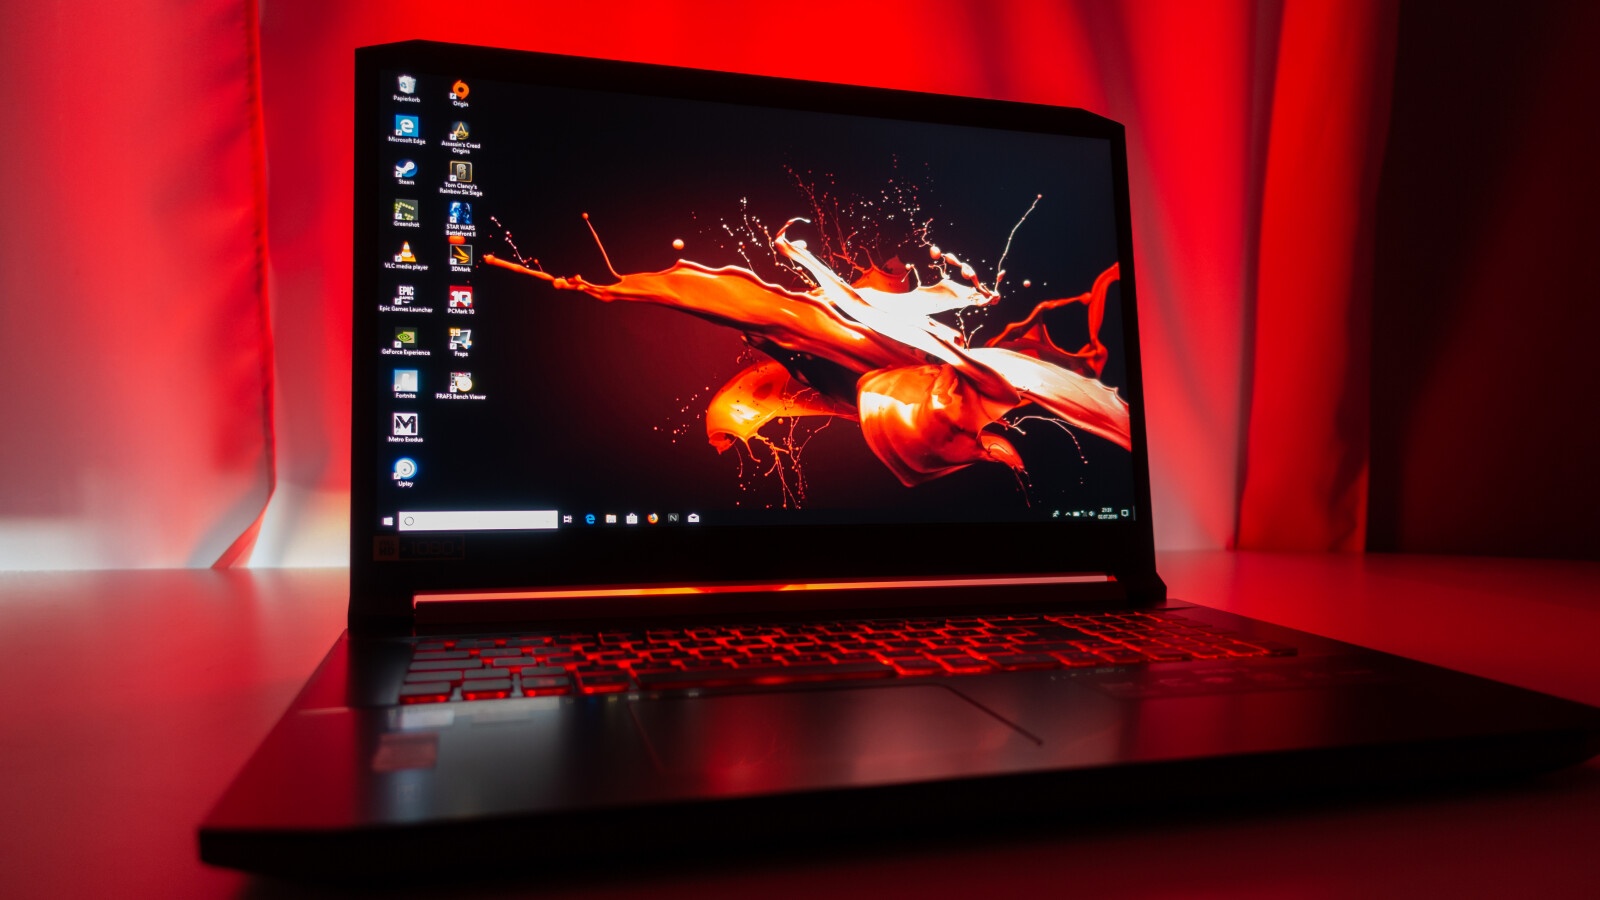 Acer Nitro 5 in the test: A strong playable laptop for beginners